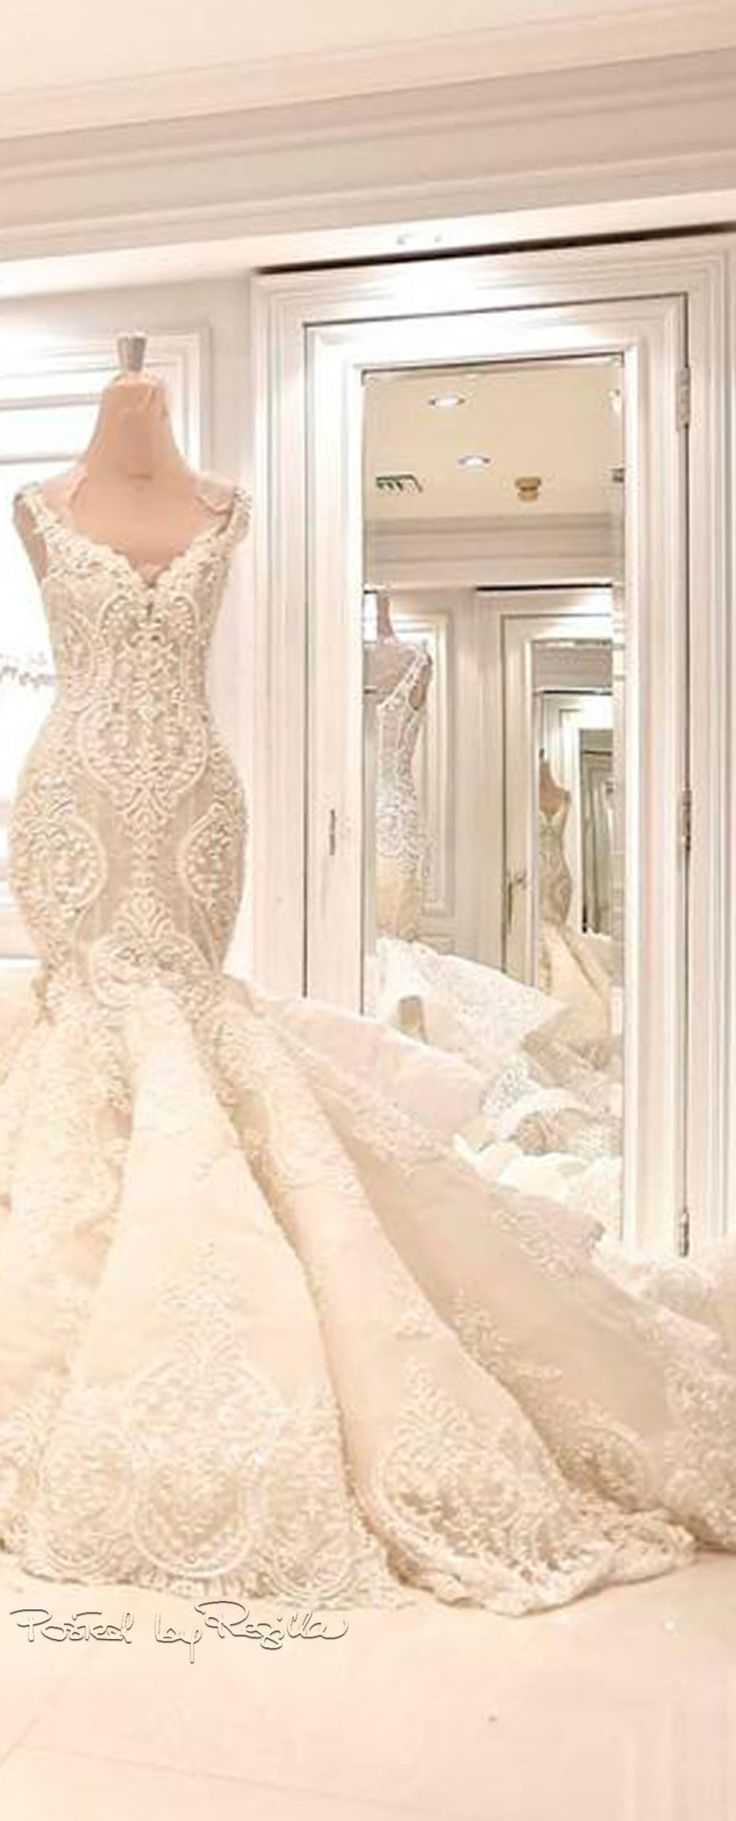 Lace mermaid style wedding dress